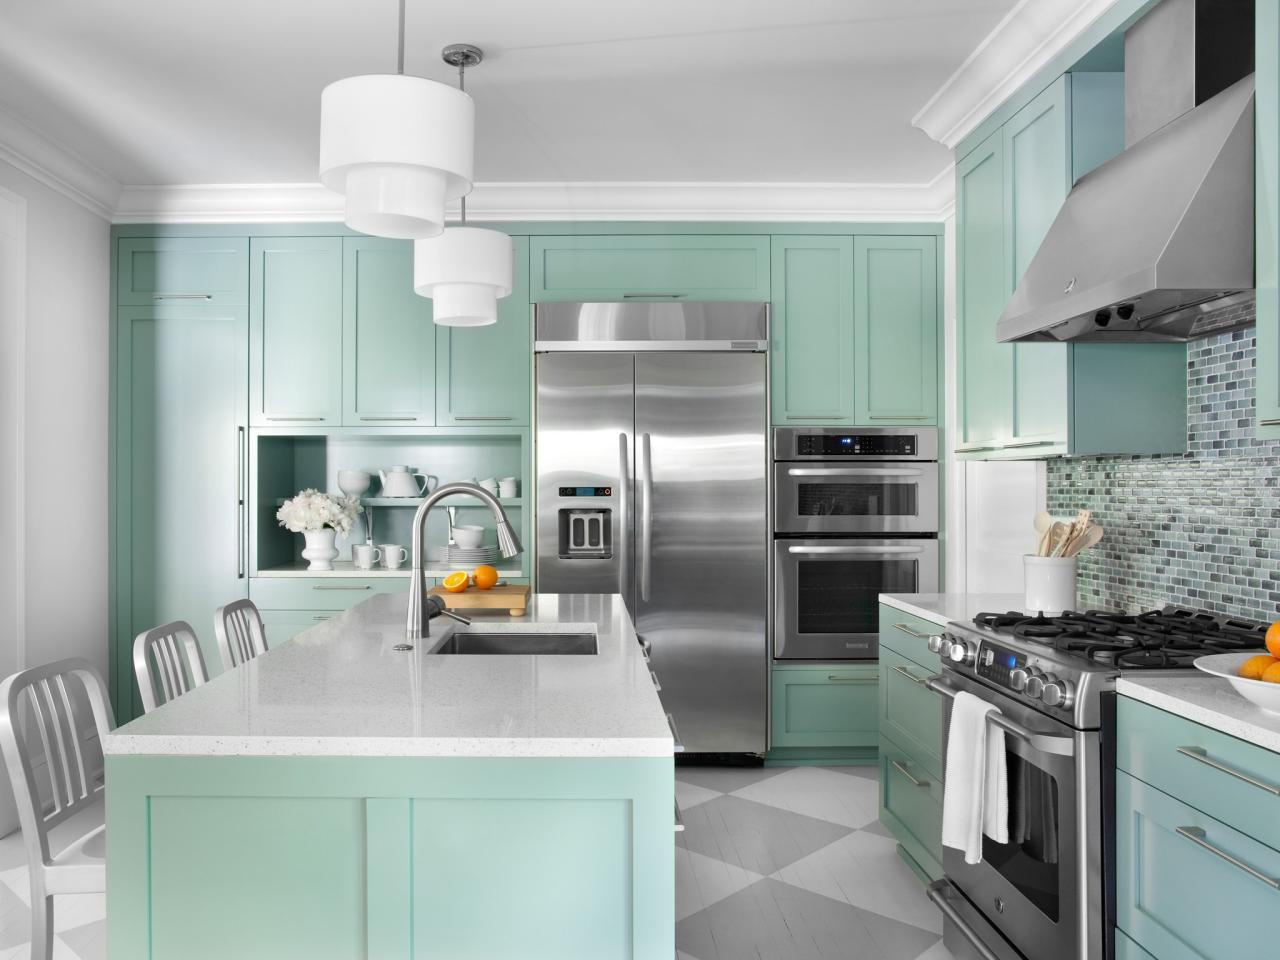 color-ideas-for-painting-kitchen-cabinets_4x3.jpg.rend_.hgtvcom.1280.960